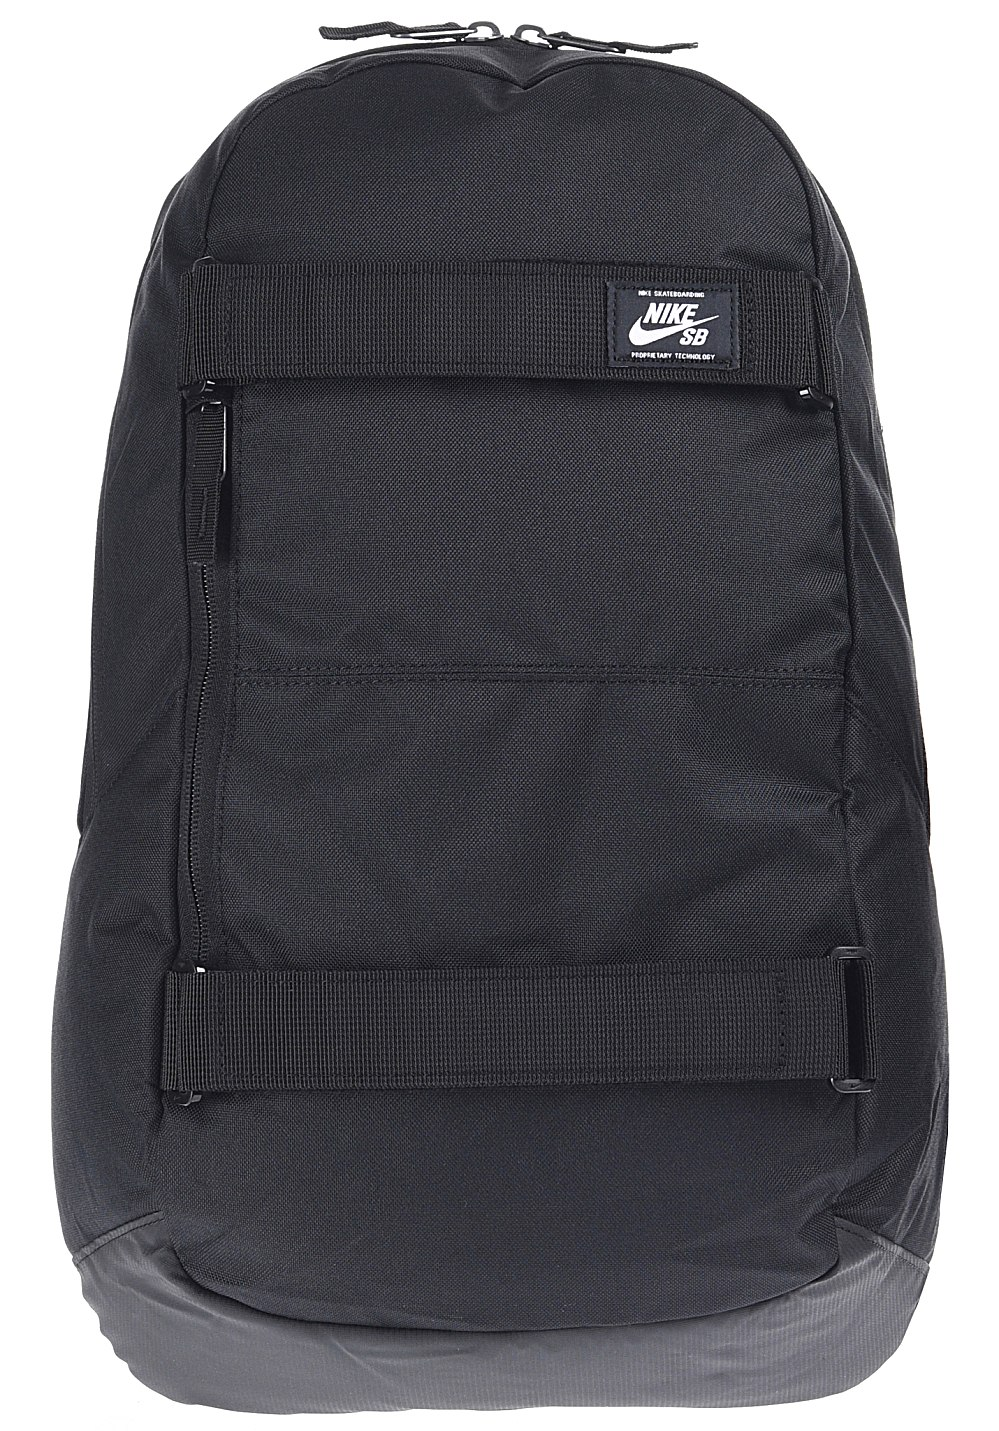 new authentic new arrive lace up in NIKE SB Courthouse 24L - Rucksack - Schwarz - Planet Sports